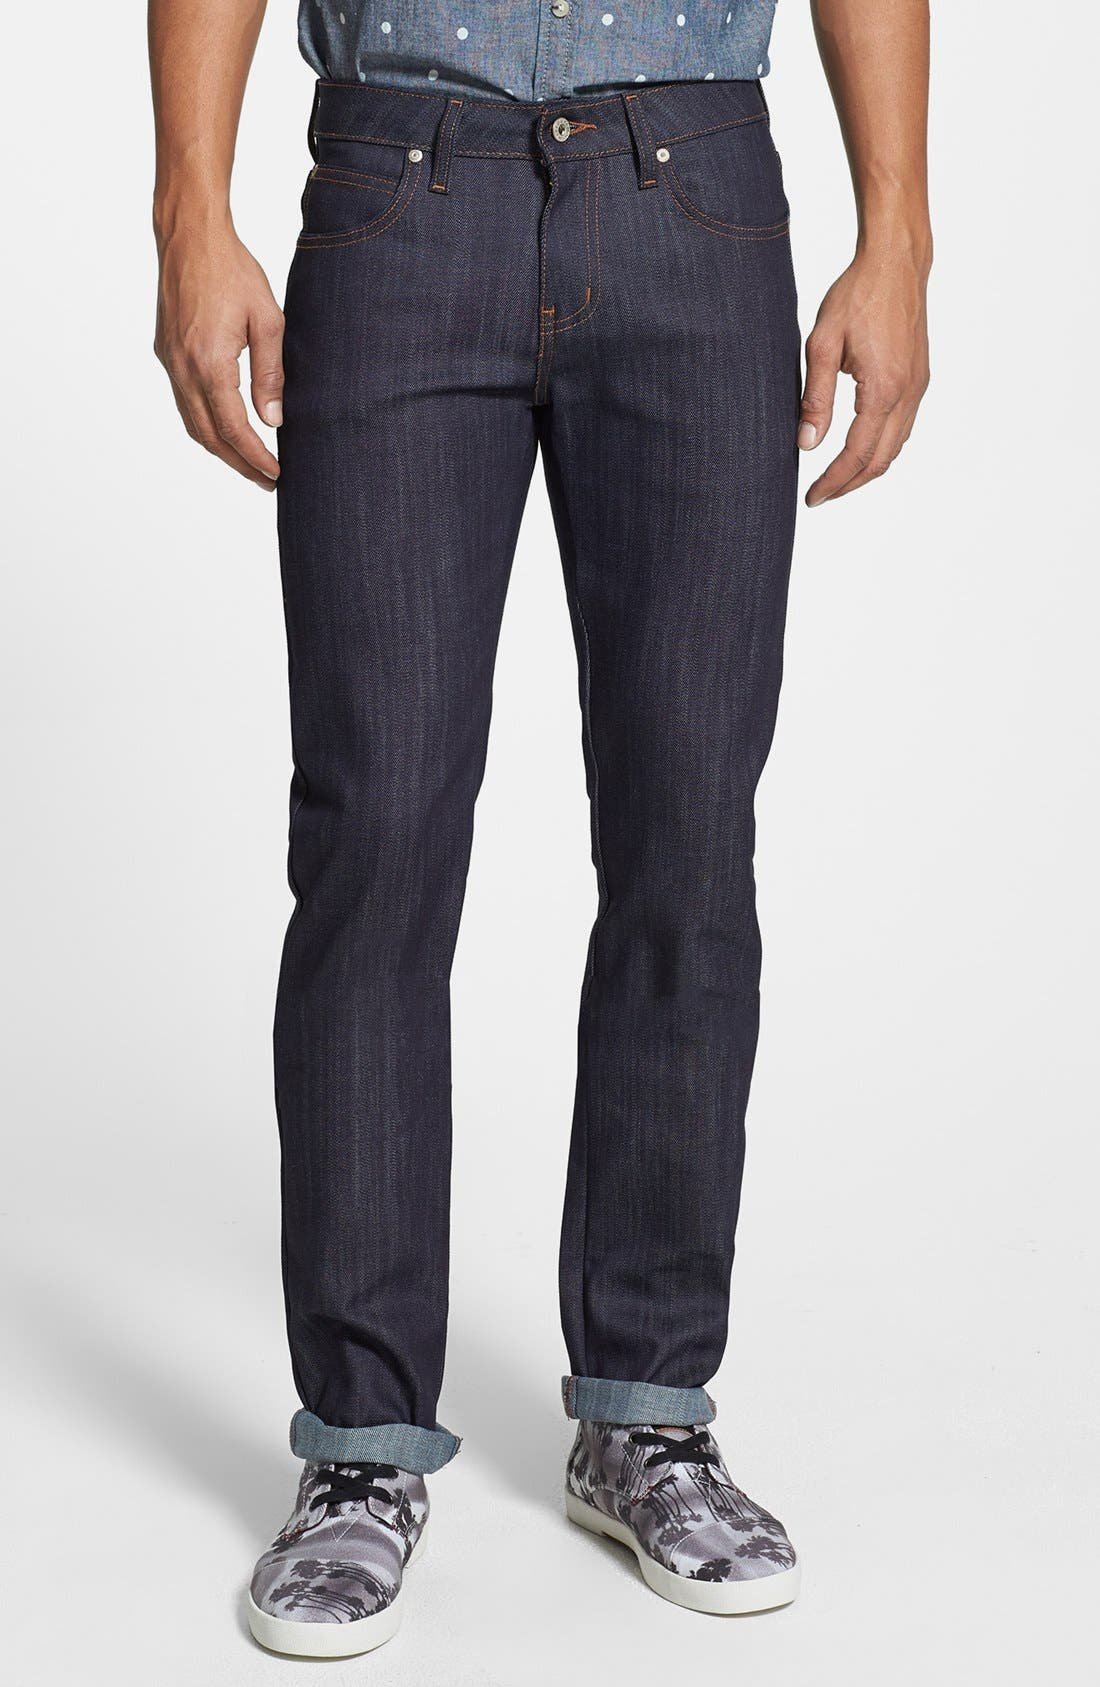 Alternate Image 1 Selected - Naked & Famous Denim 'Skinny Guy' Skinny Fit Jeans (Indigo Power Stretch)